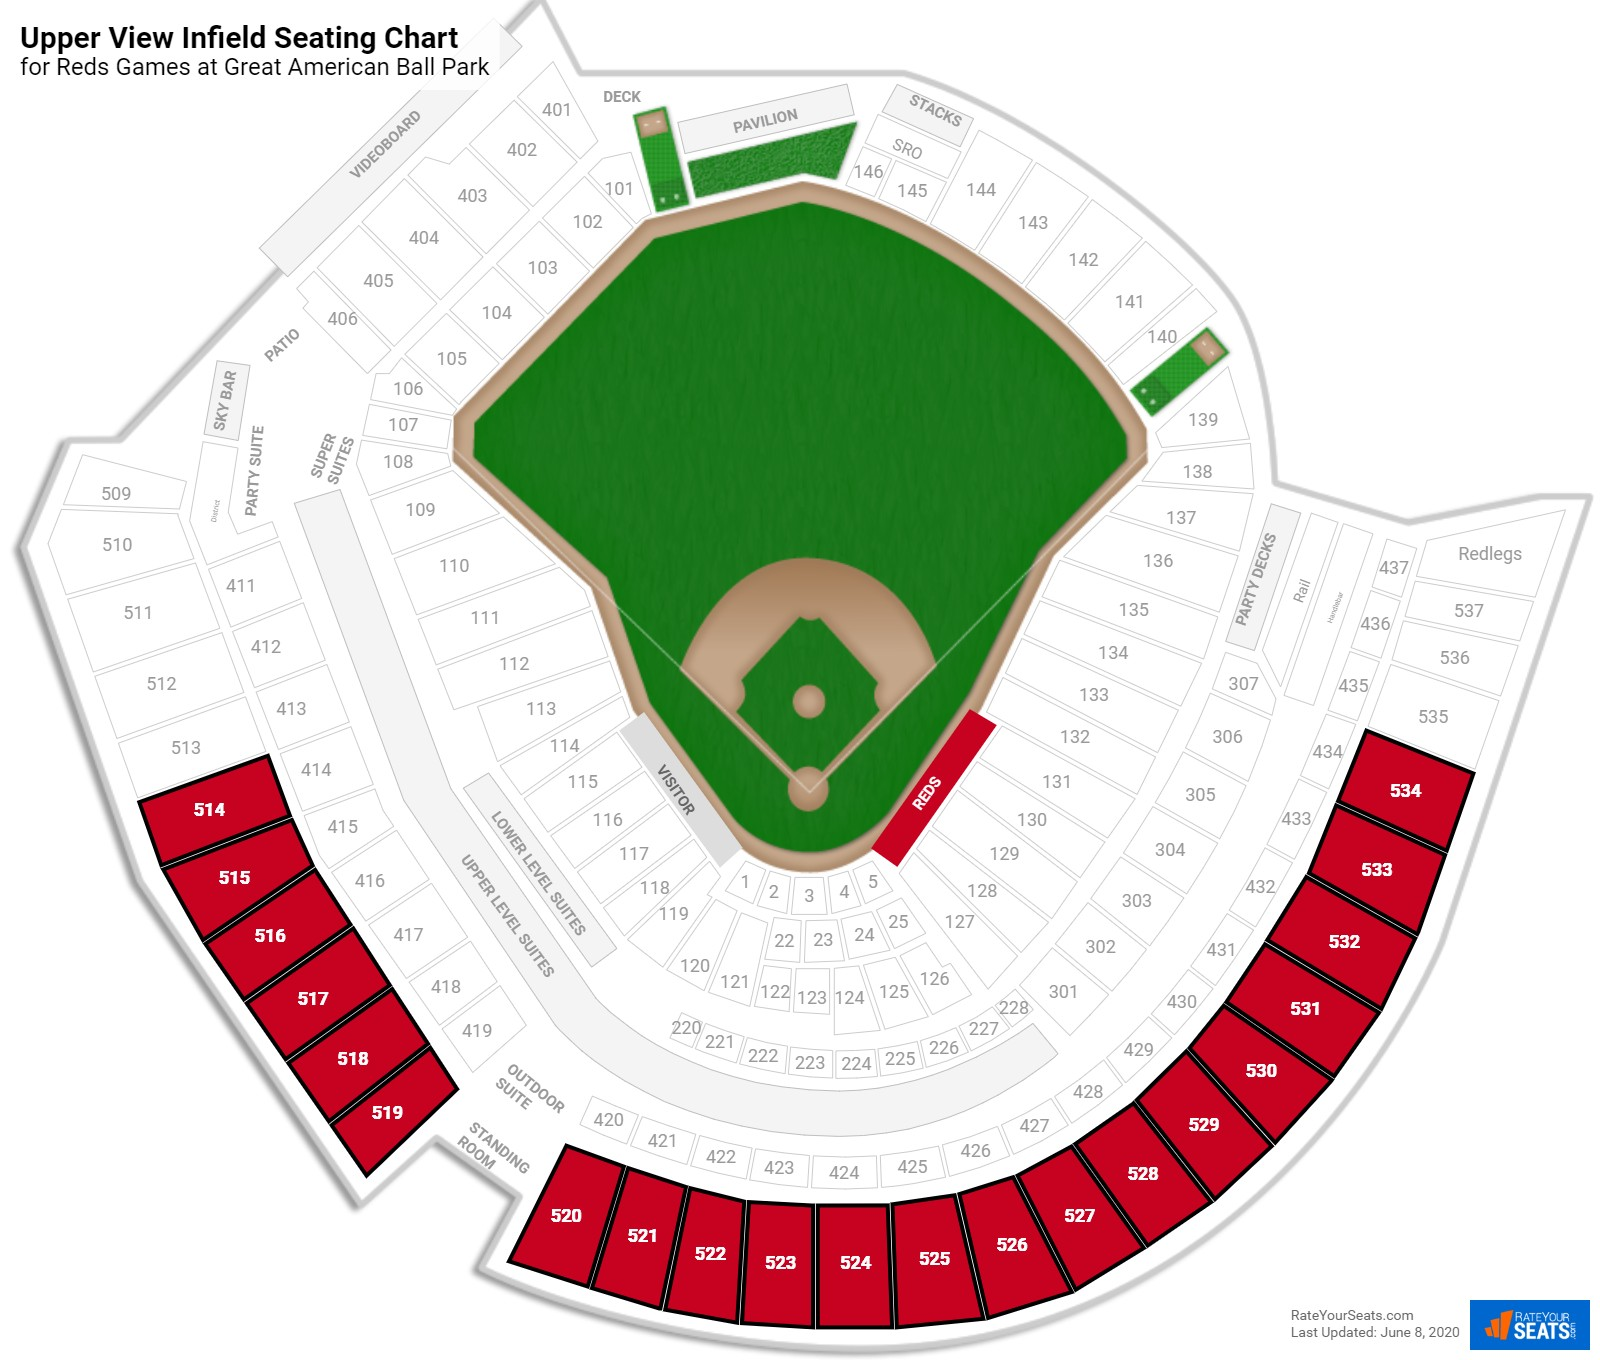 Great American Ball Park Upper View Infield seating chart